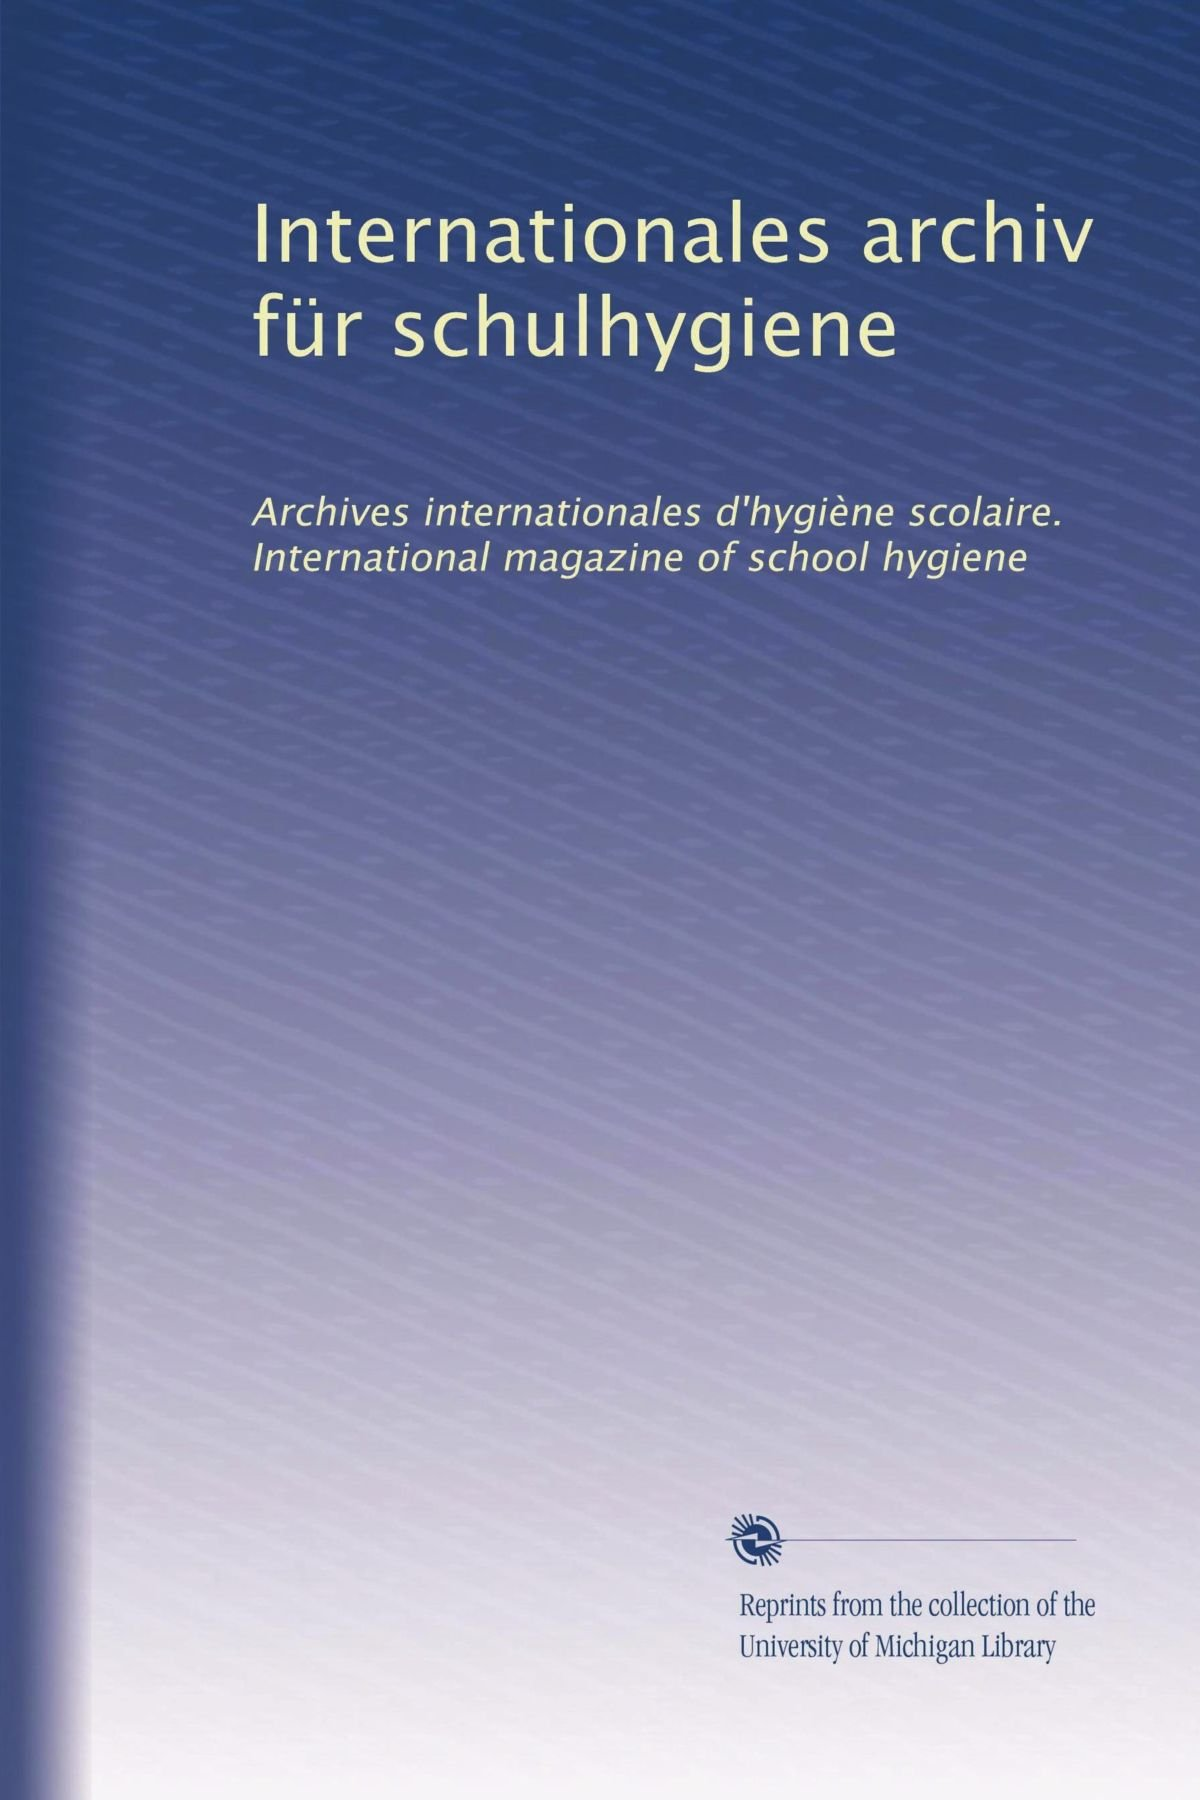 Internationales archiv für schulhygiene: Archives internationales d'hygiène scolaire. International magazine of school hygiene (Volume 6) (German Edition) ebook